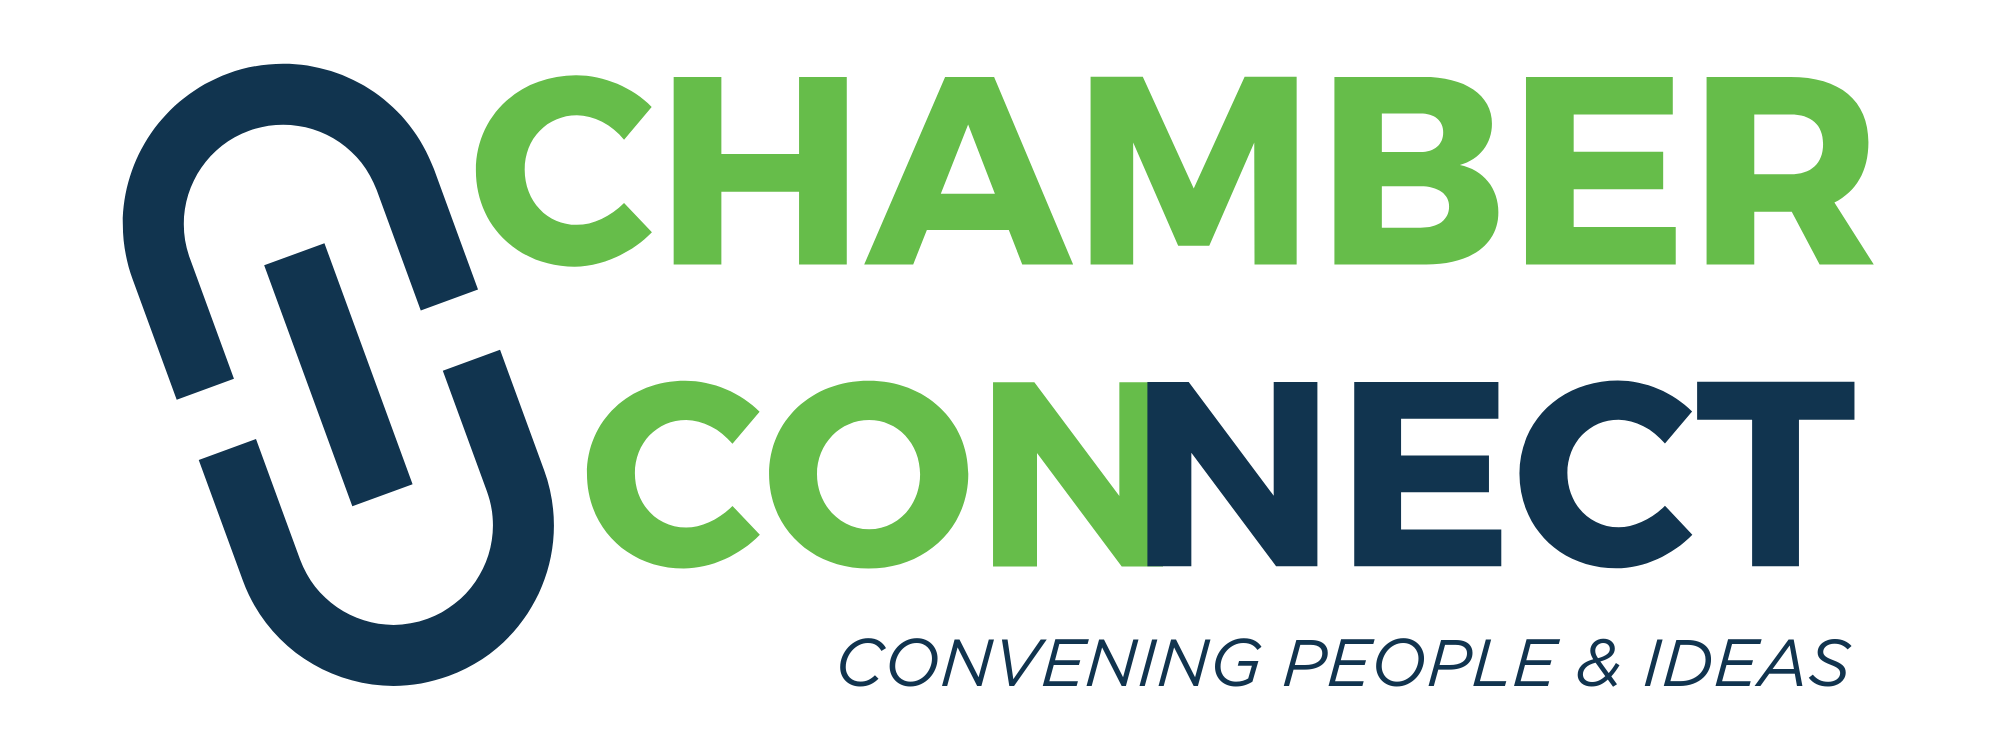 Chamber-Connect-Logo-2019.png